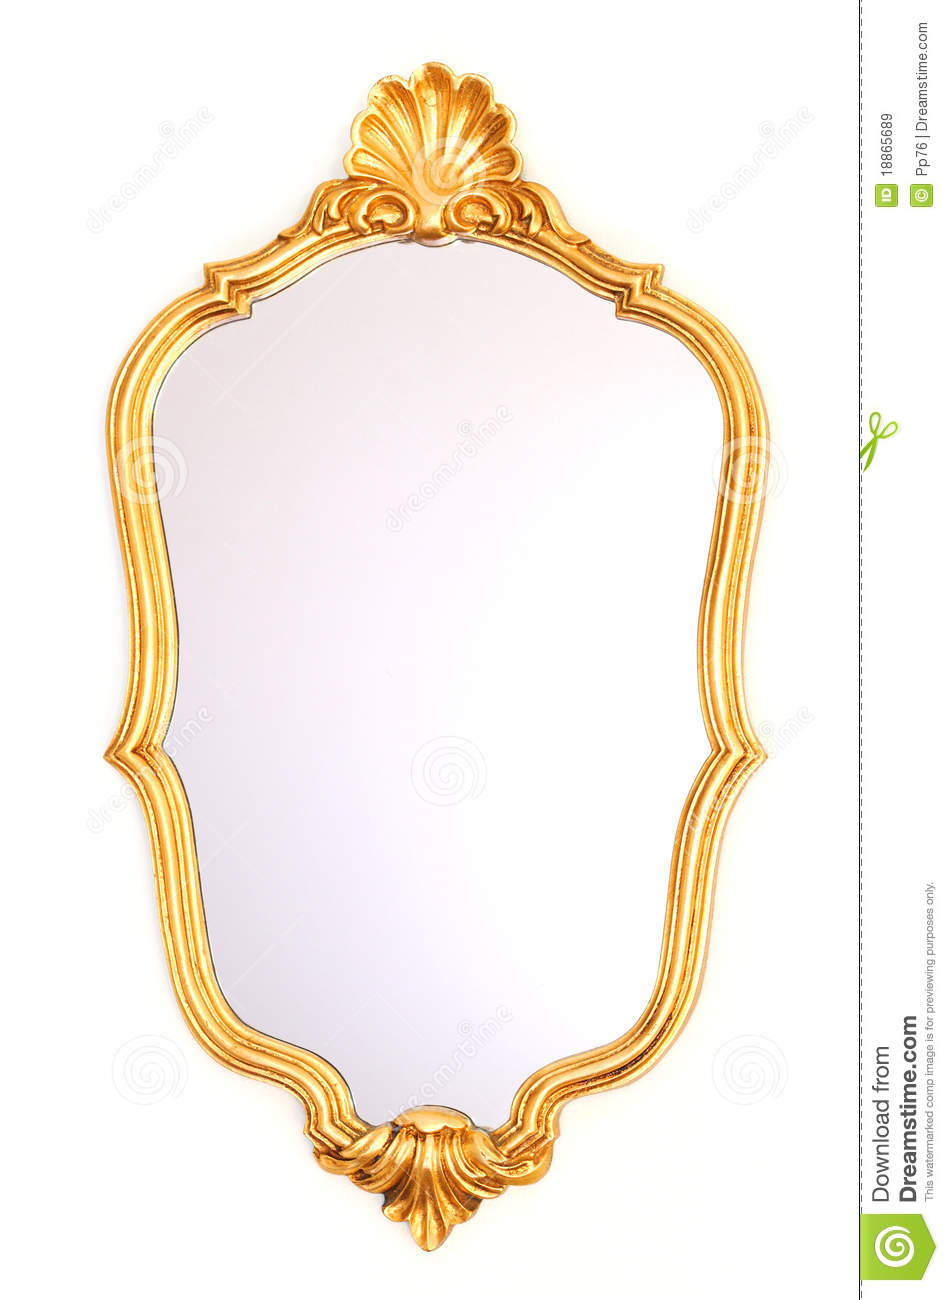 Mirror Gold Frame Stock Image Image Of Fashioned Image